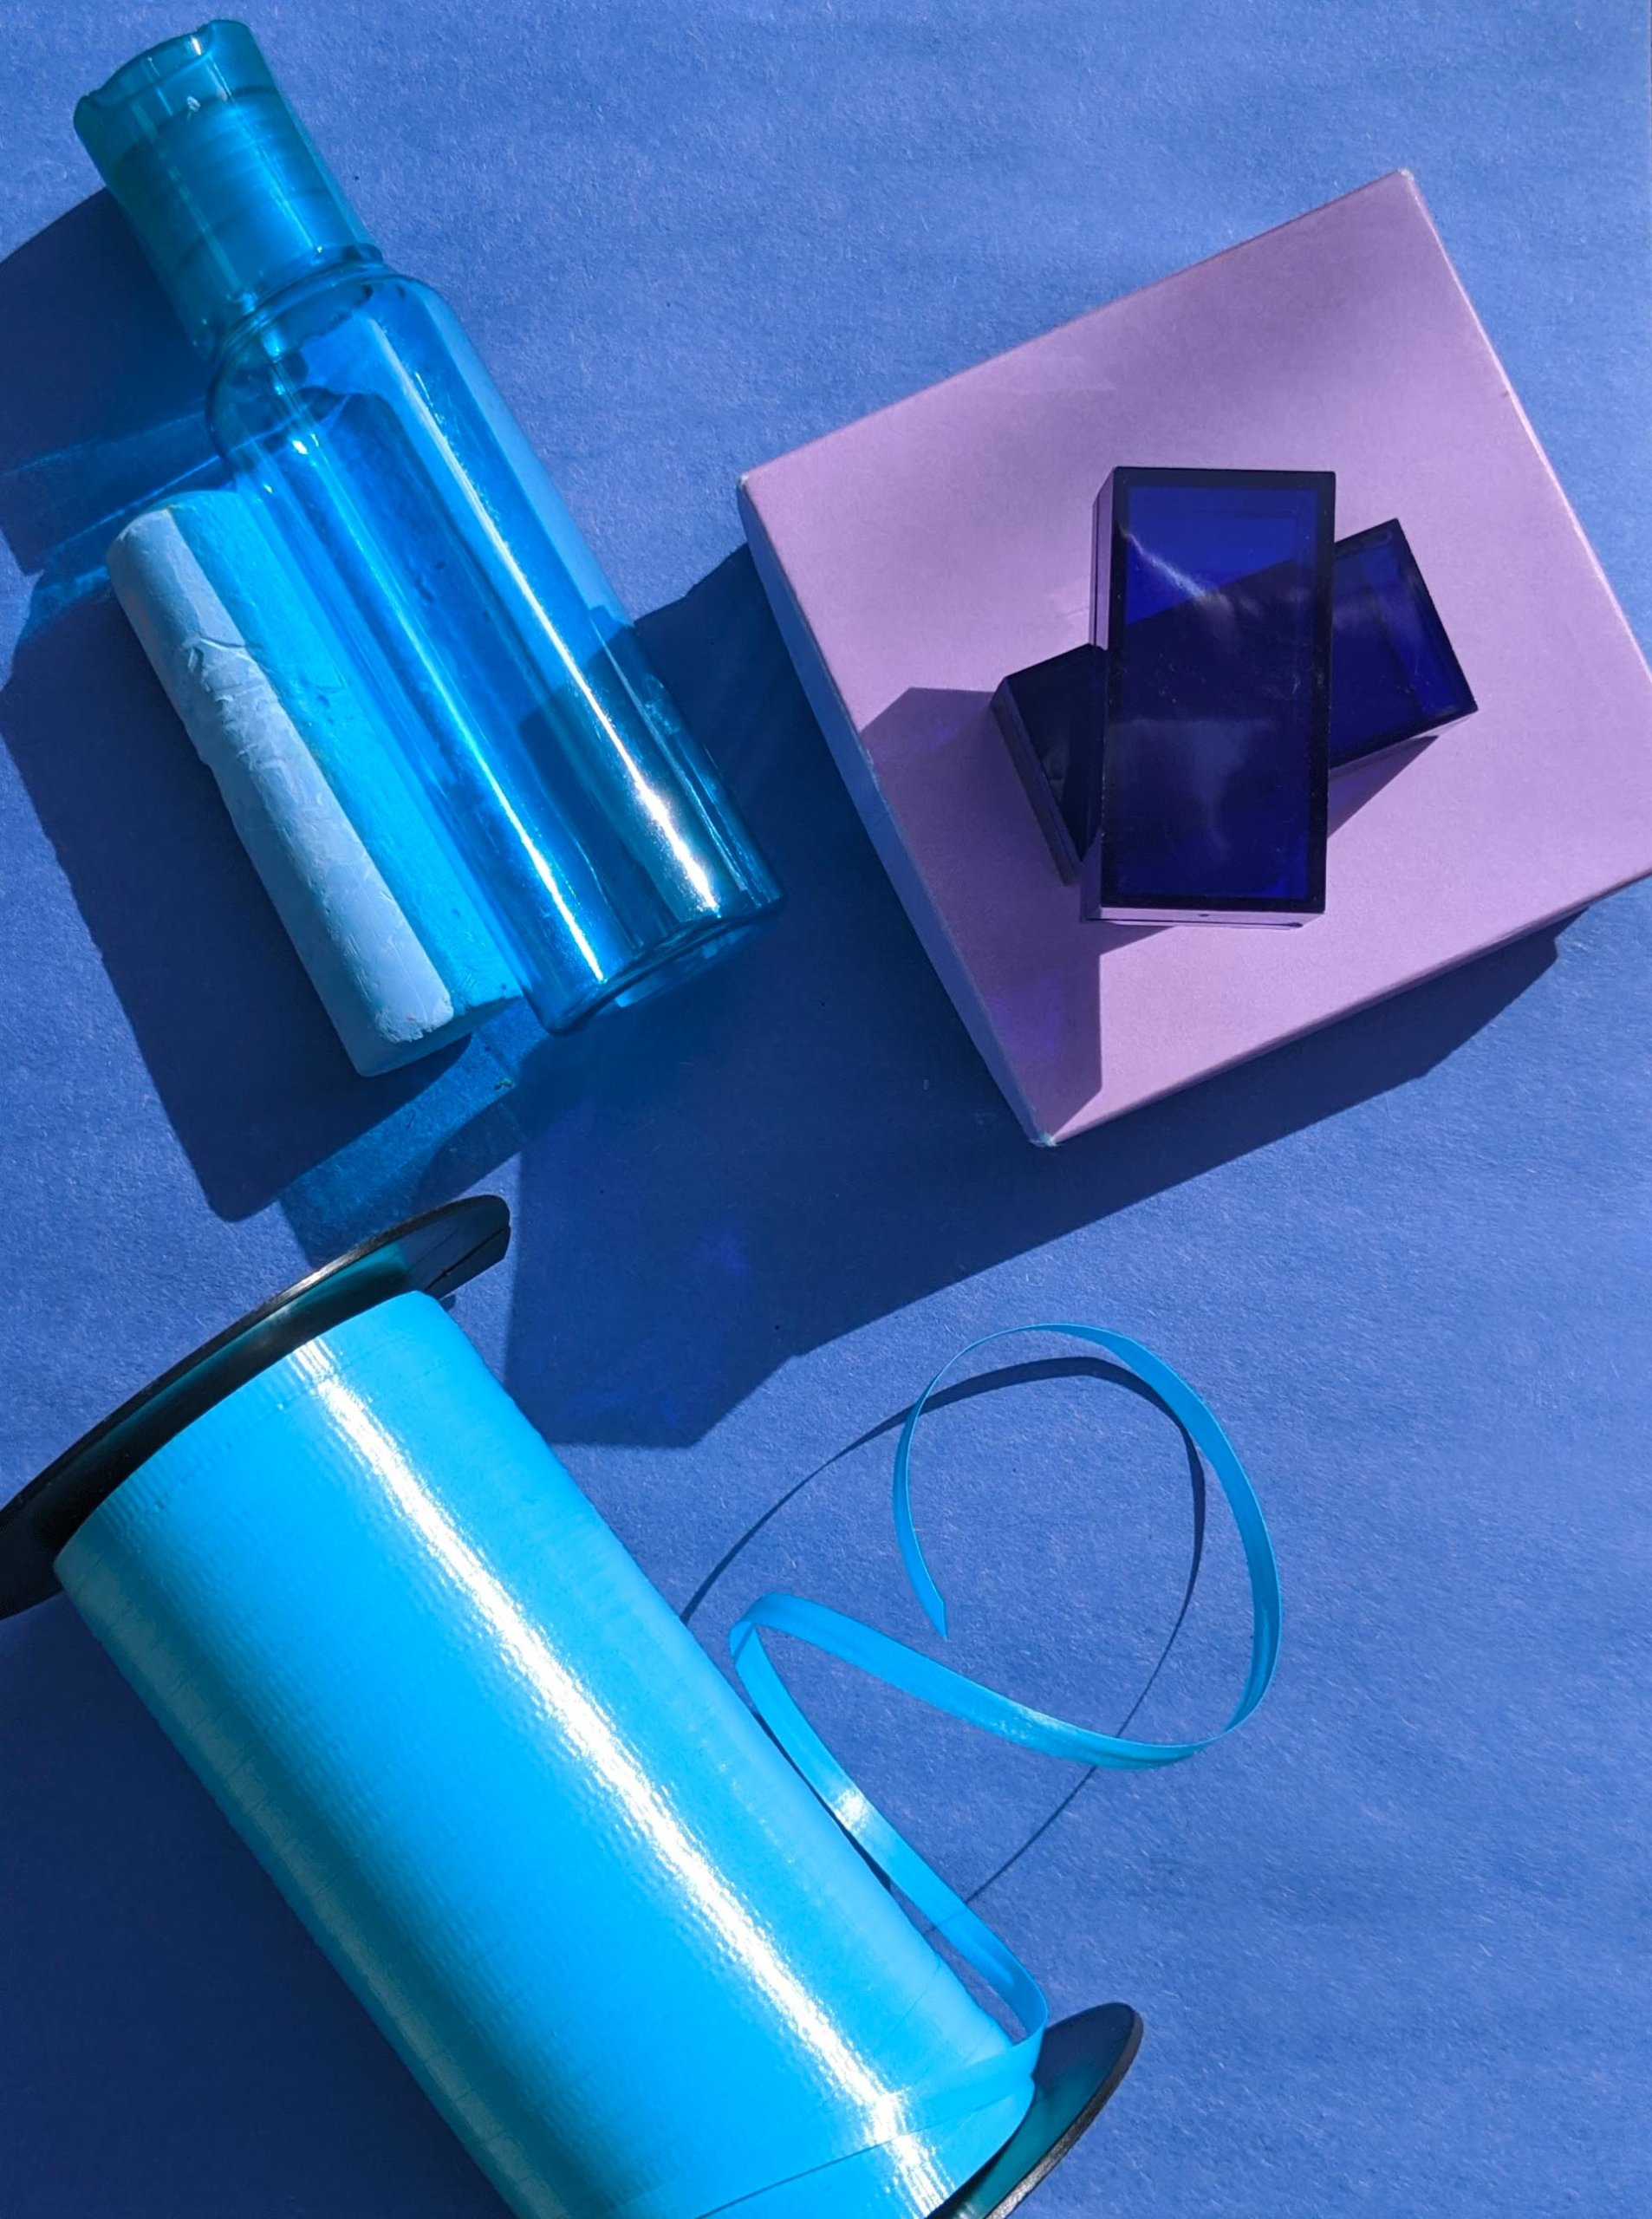 Blue and purple arts and crafts supplies